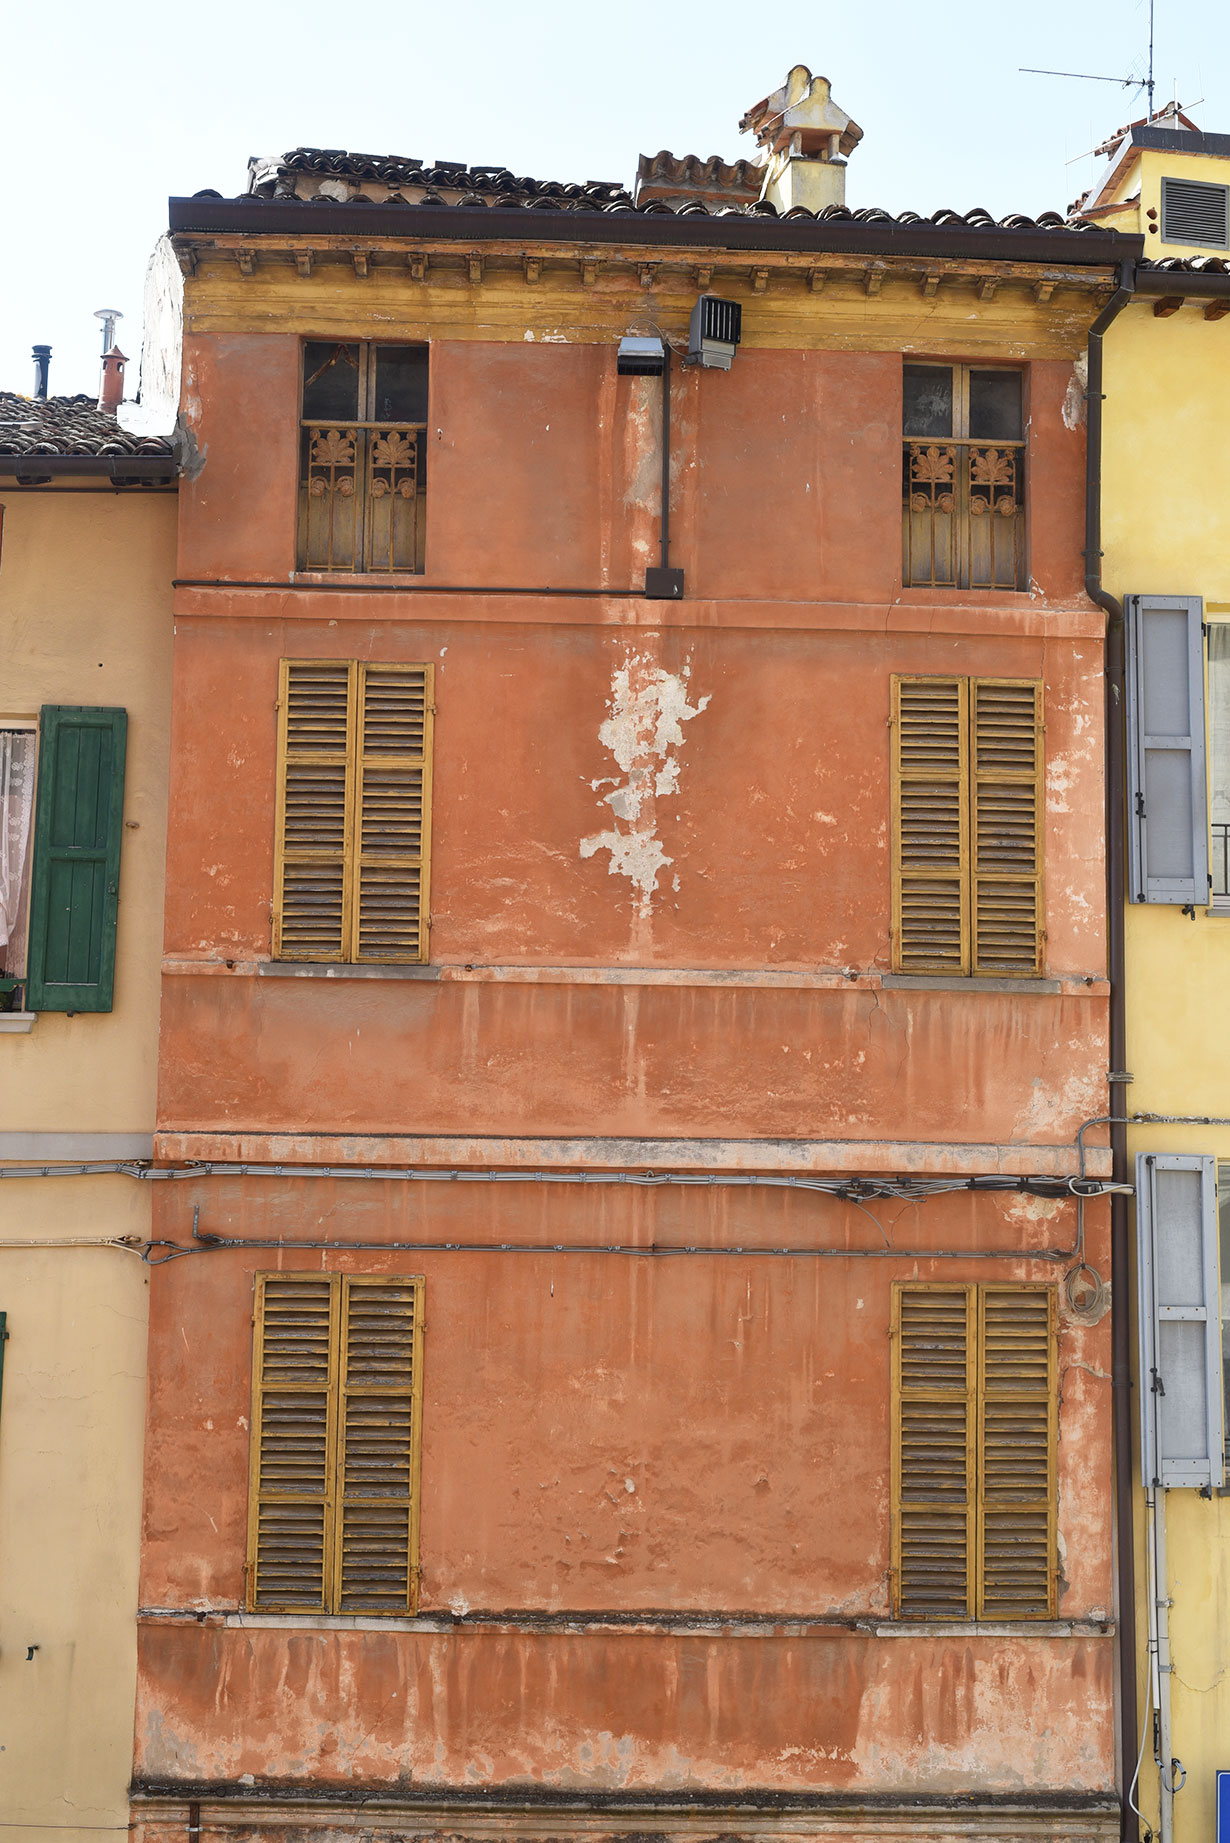 The colorful houses of Brisighella, Emilia Romagna